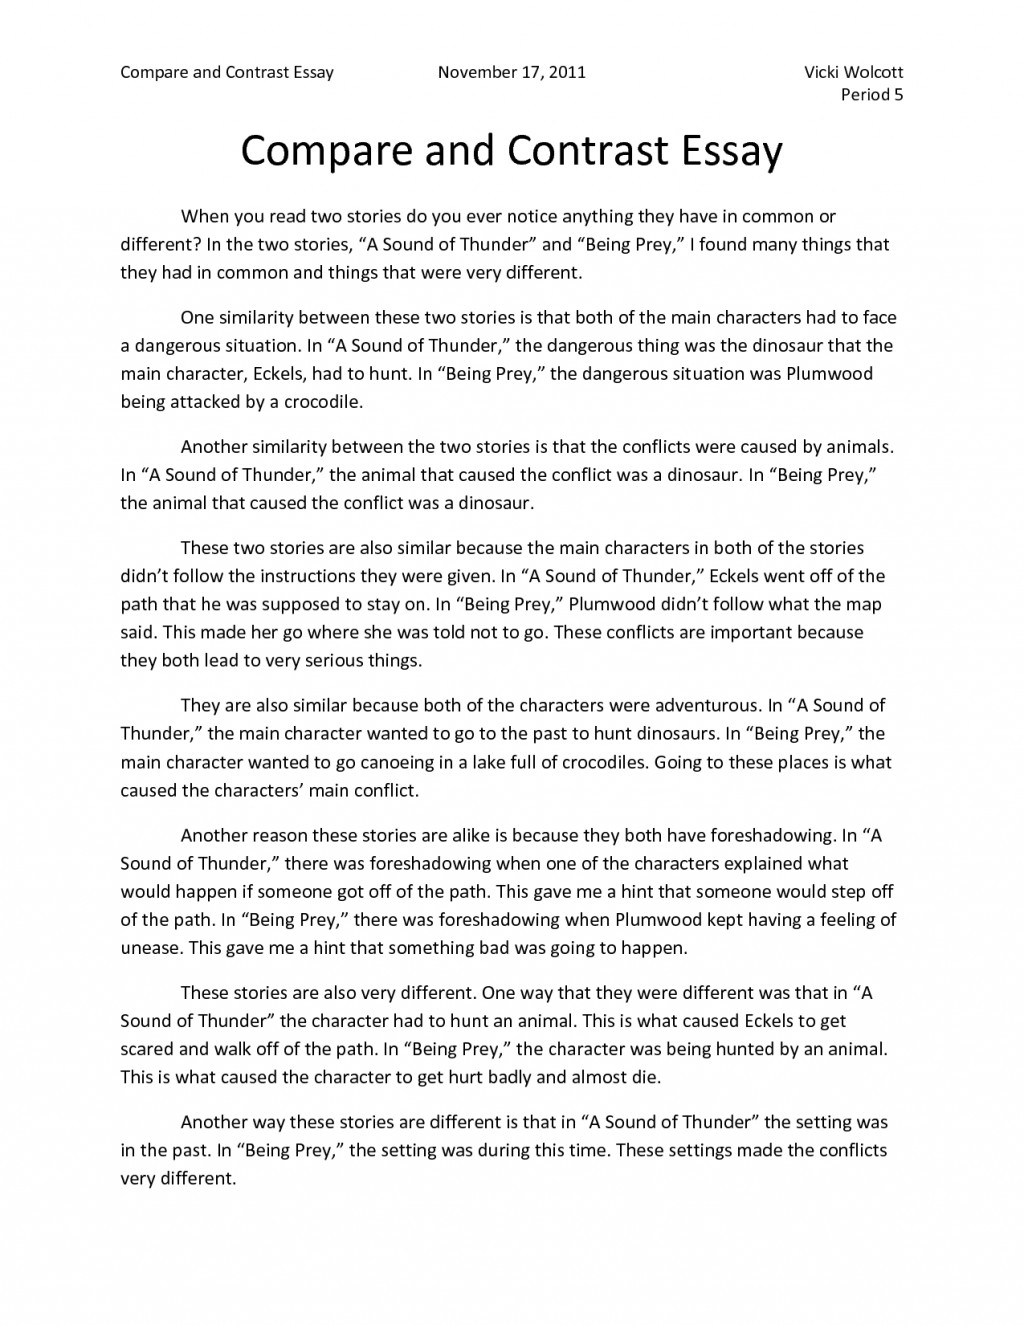 002 Essay Example Compare And Contrast Basic Unforgettable Ideas For 5th Grade Funny Title Large